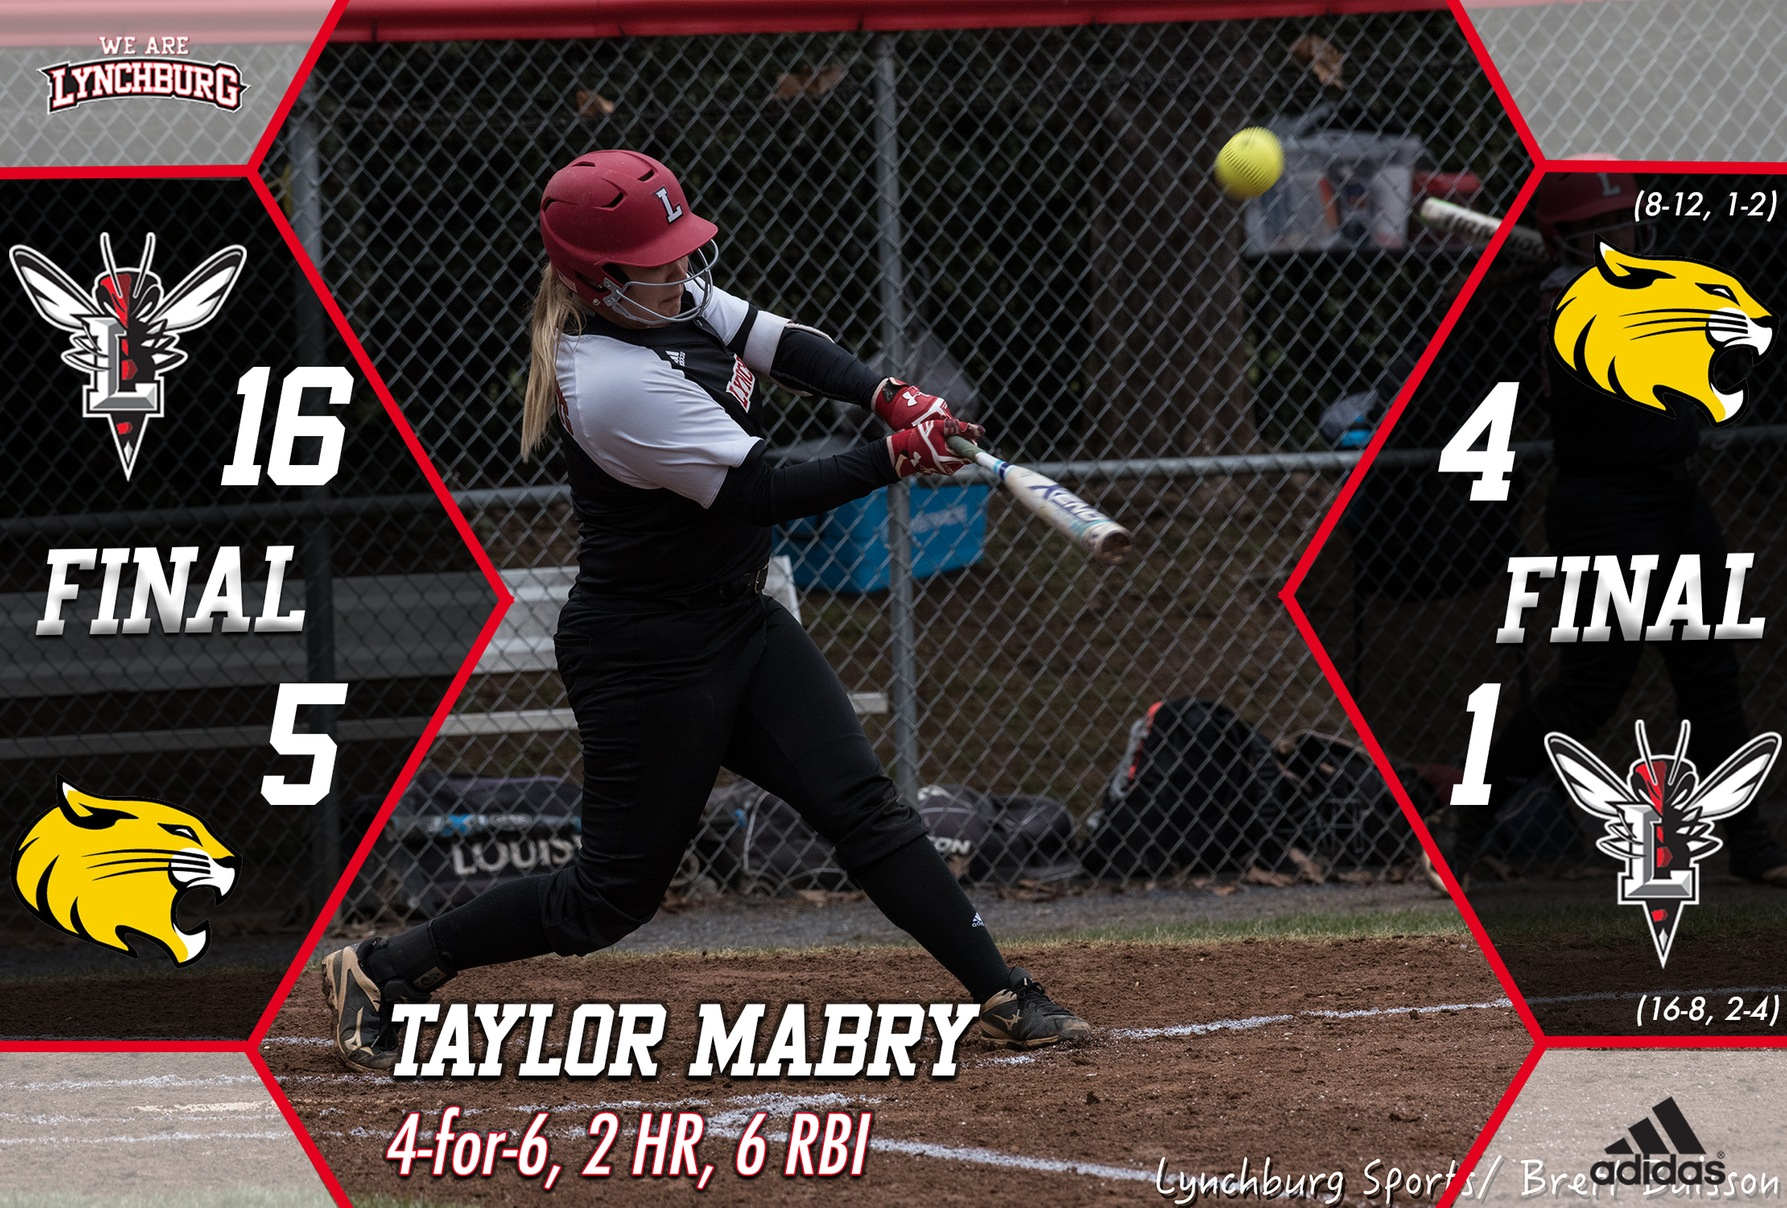 Taylor Mabry hits a softball. Text: taylor mabry 4-for-6 2 HR, 6 RBI